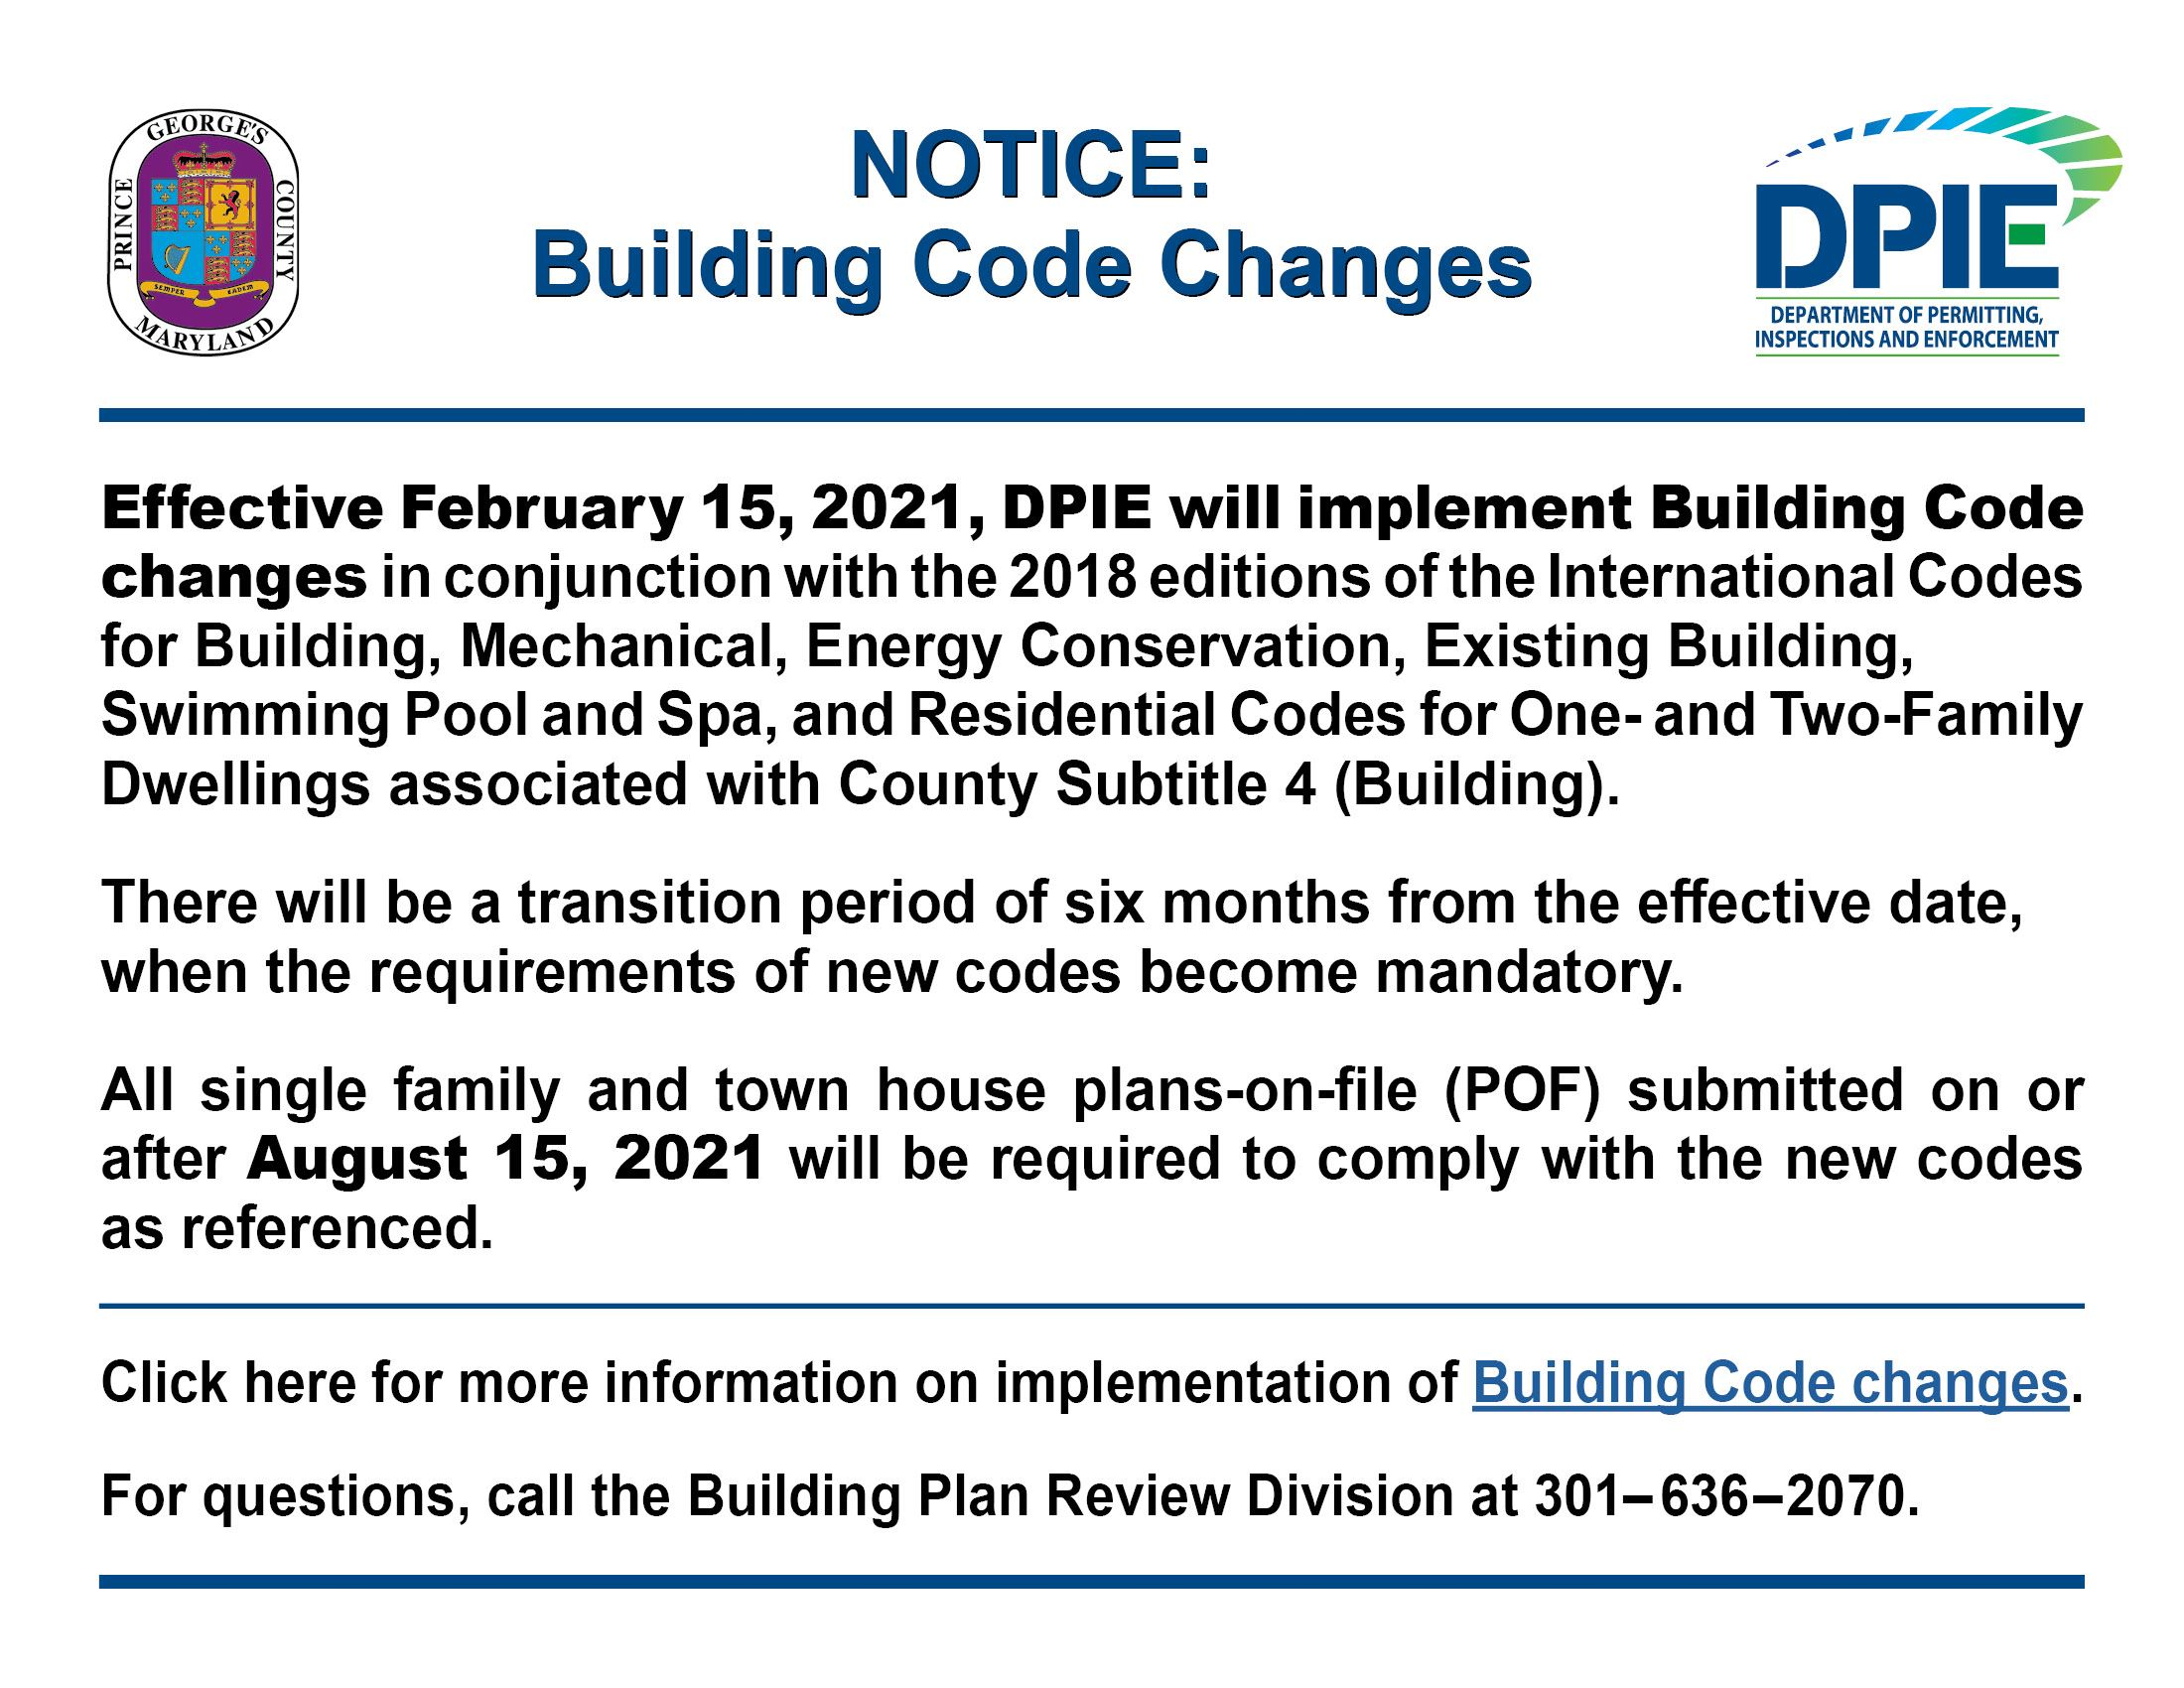 Building Code Changes 2-15-21